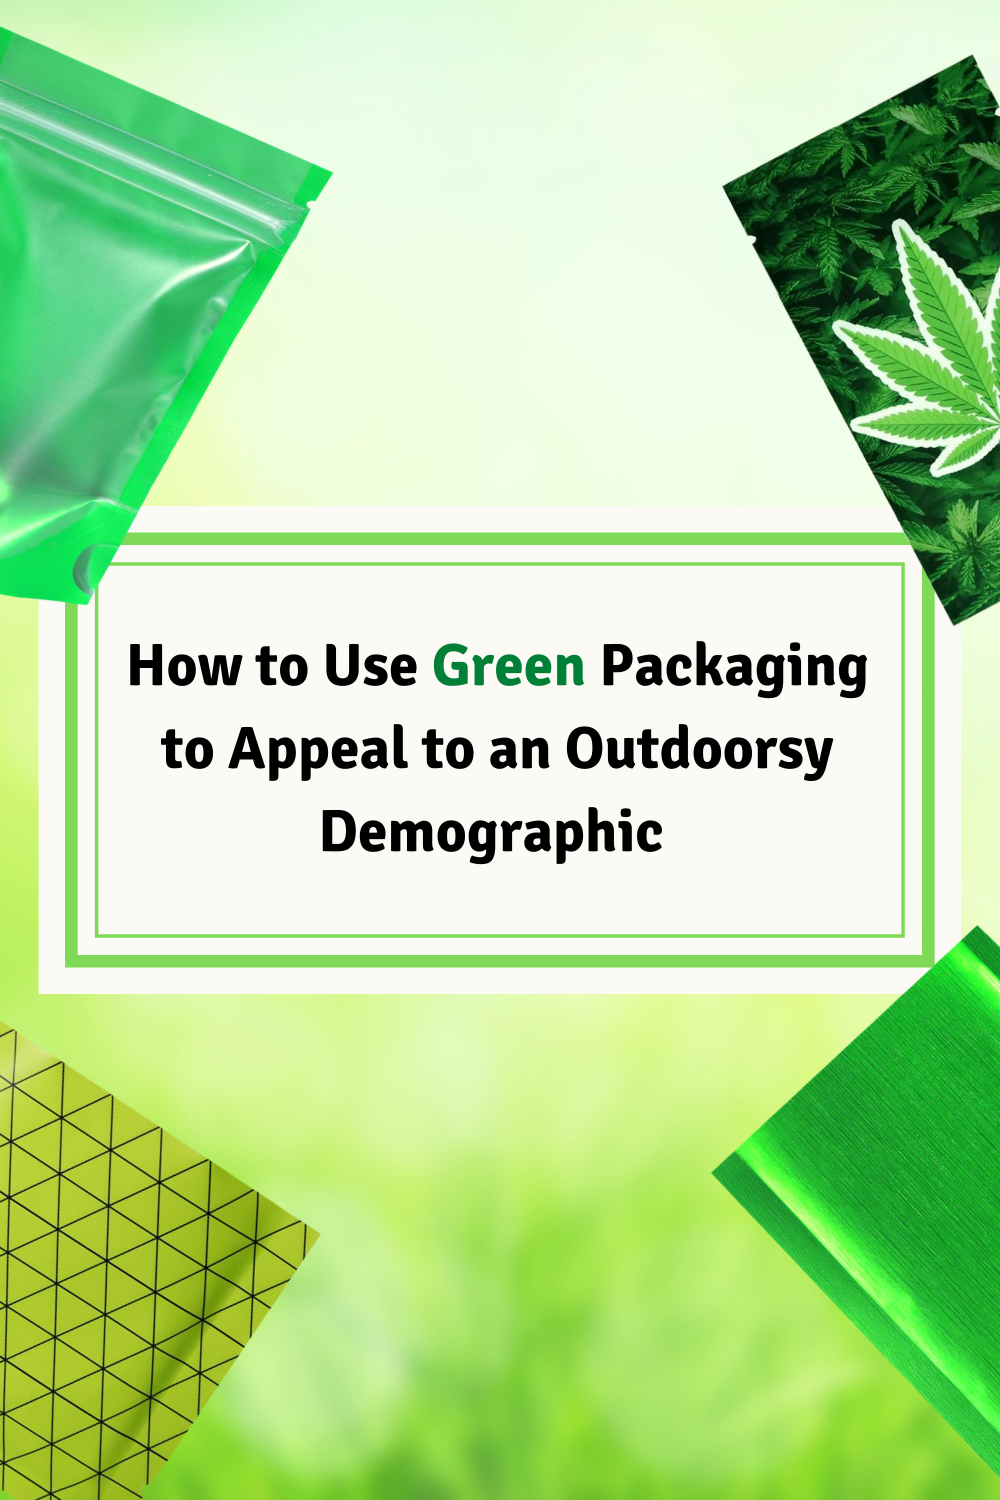 How to Use Green Packaging Effectively